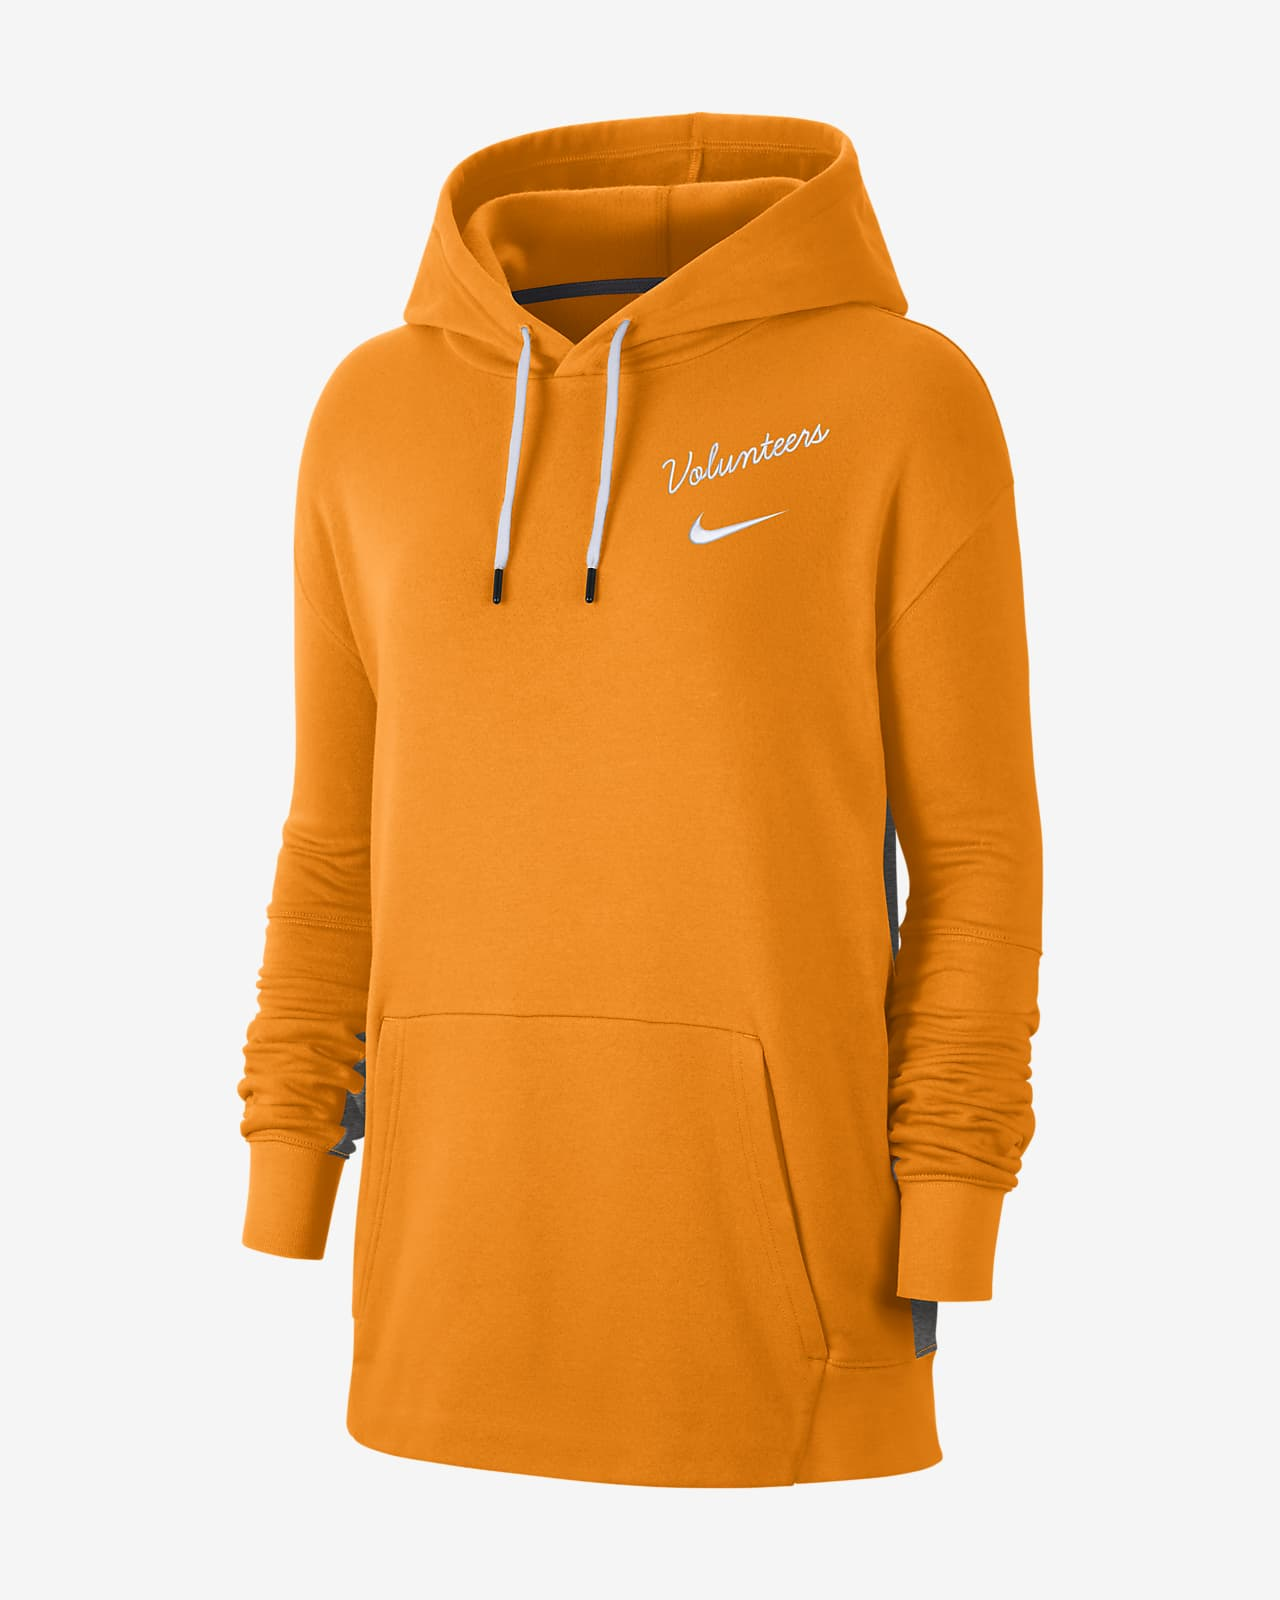 Nike College (Tennessee) Women's Fleece Pullover Hoodie